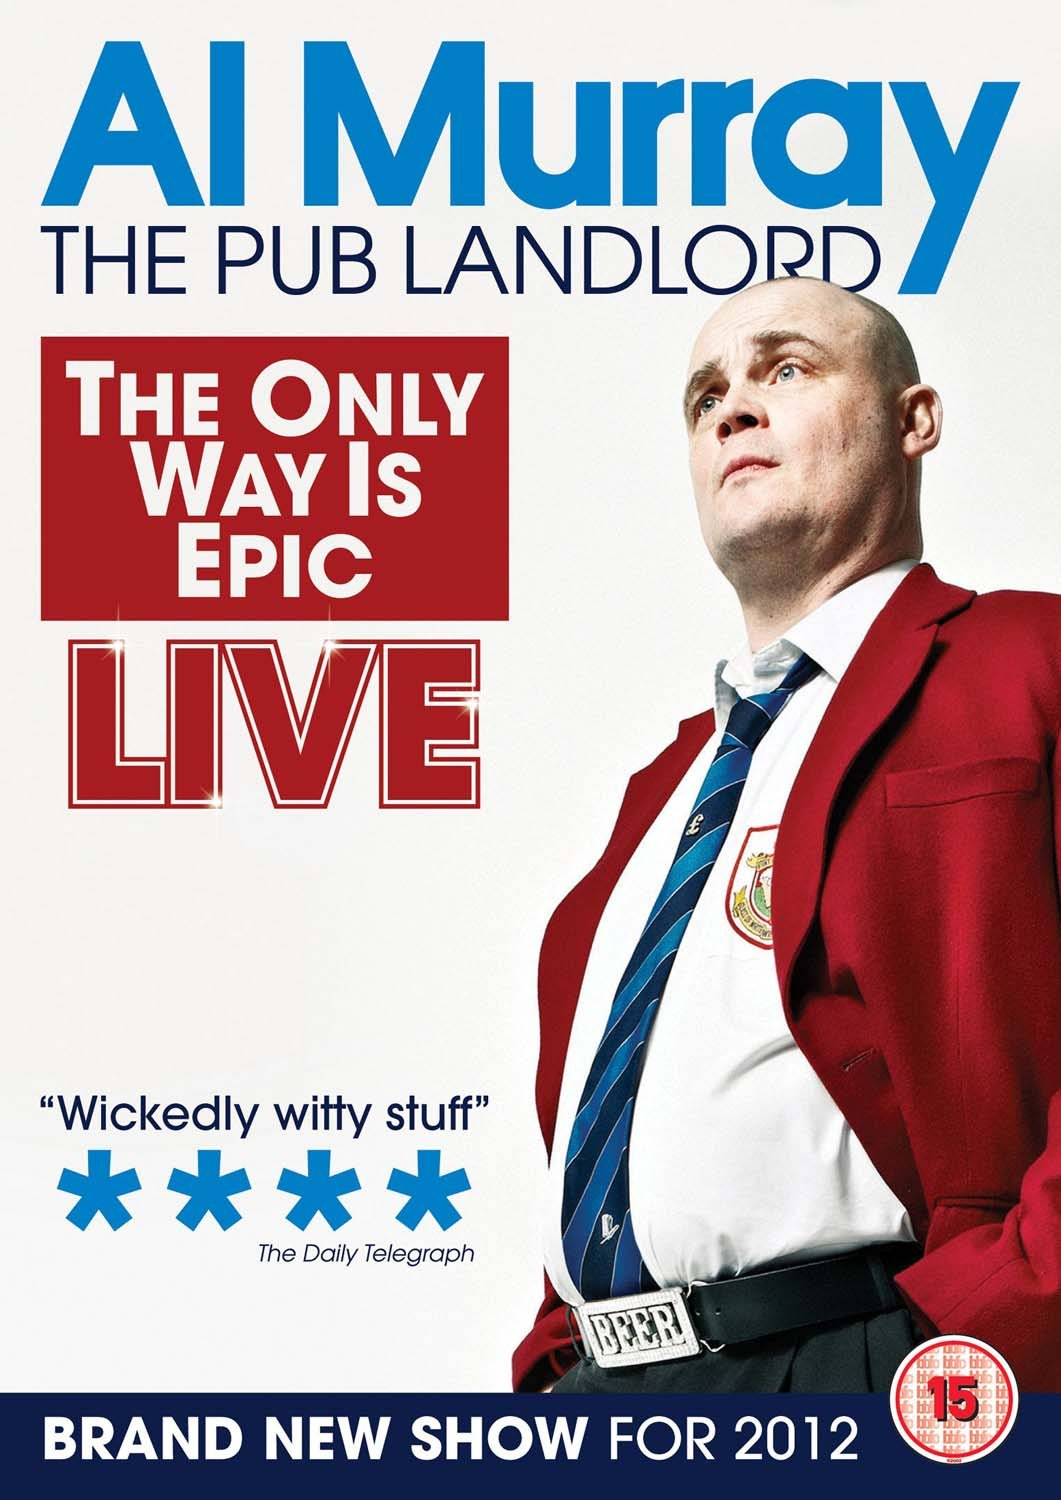 Al Murray: The Only Way Is Epic [DVD]: Amazon.co.uk: Al Murray: DVD ...